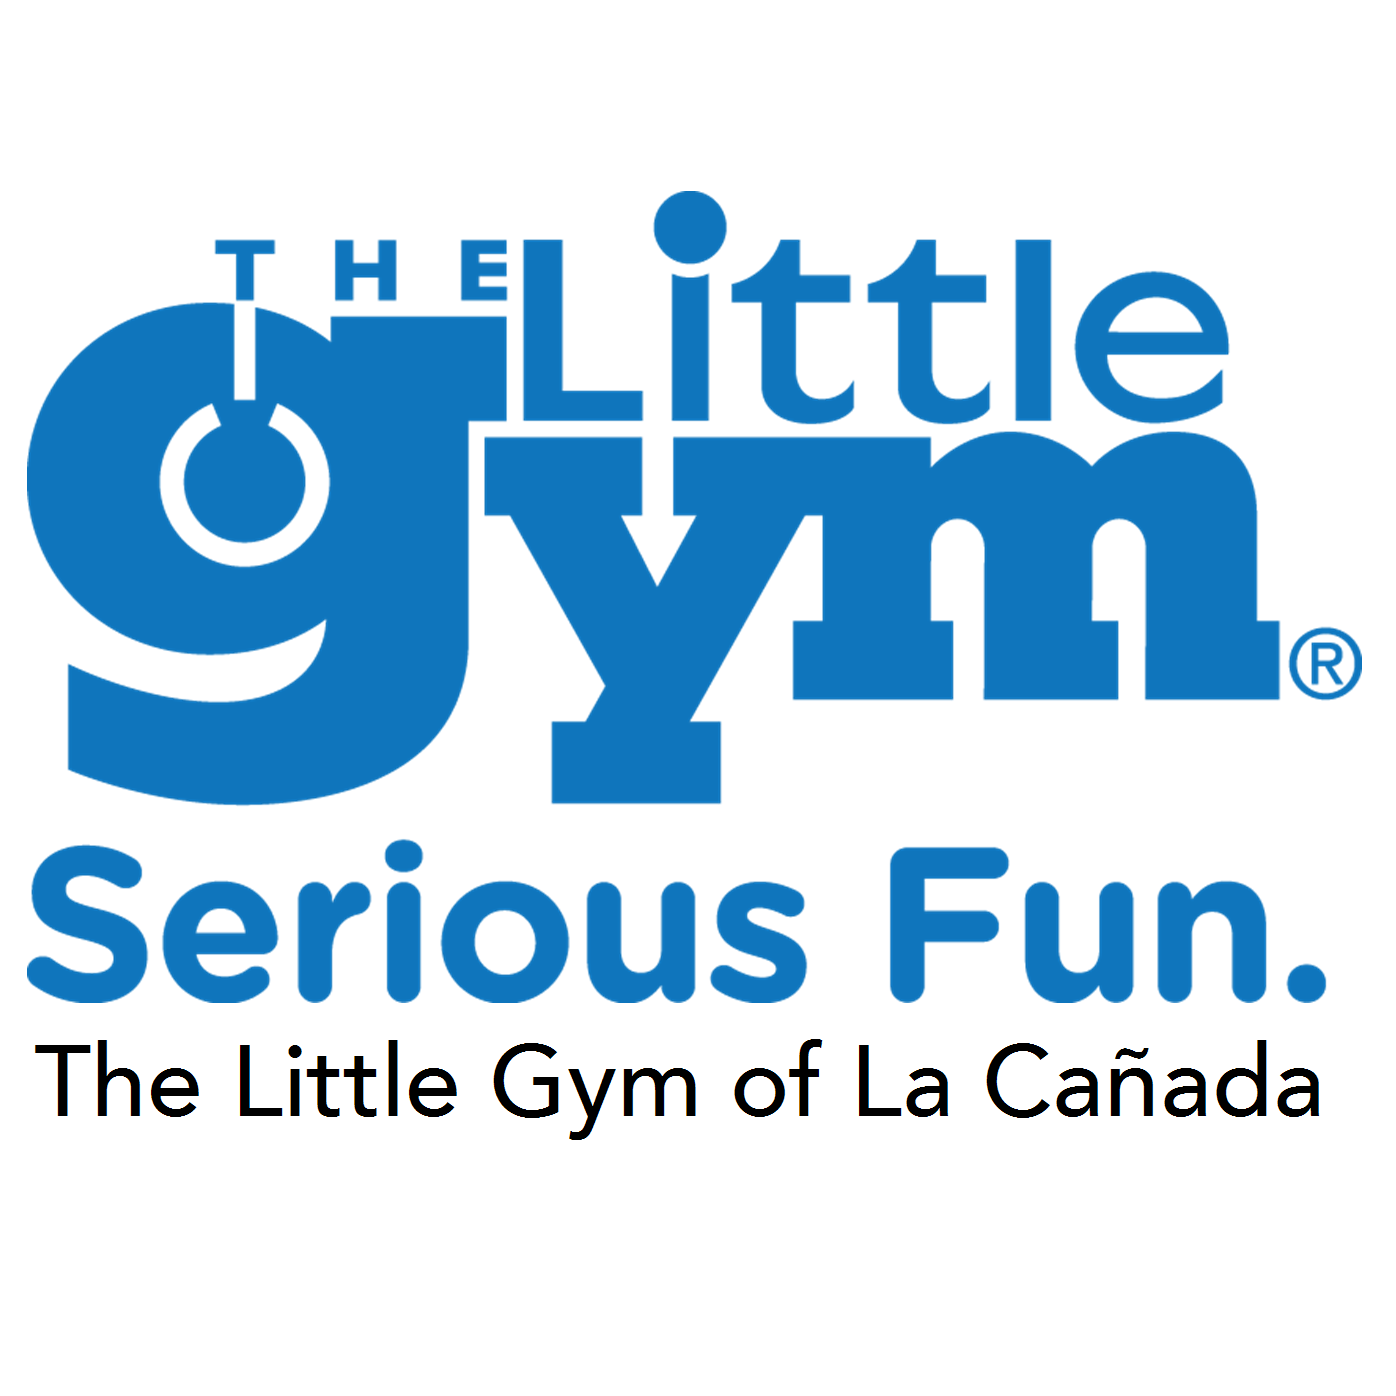 The Little Gym of La Canada